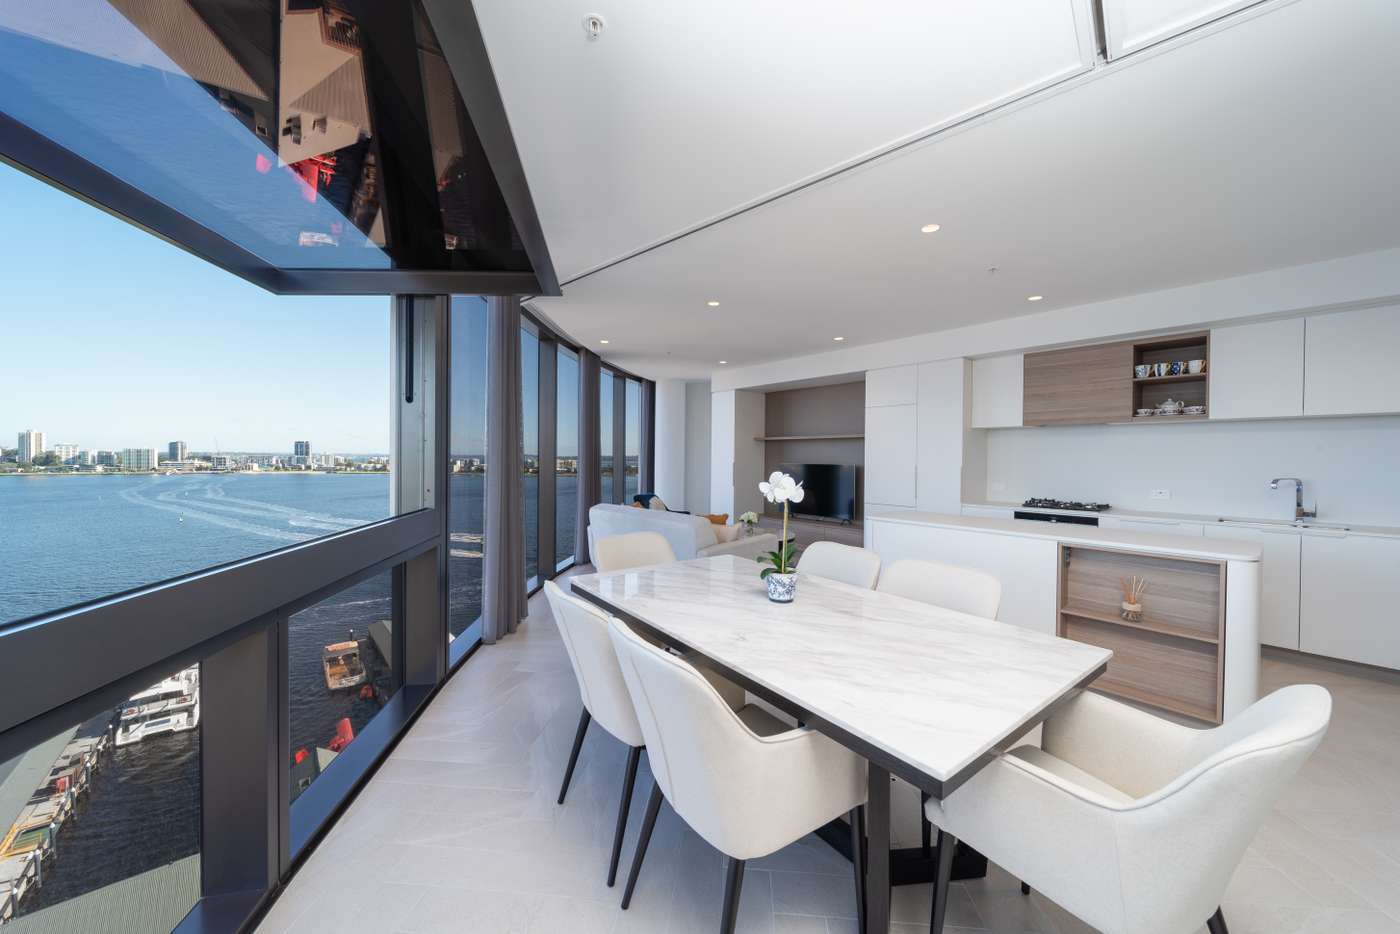 Main view of Homely apartment listing, 1101/11 Barrack Square, Perth, WA 6000